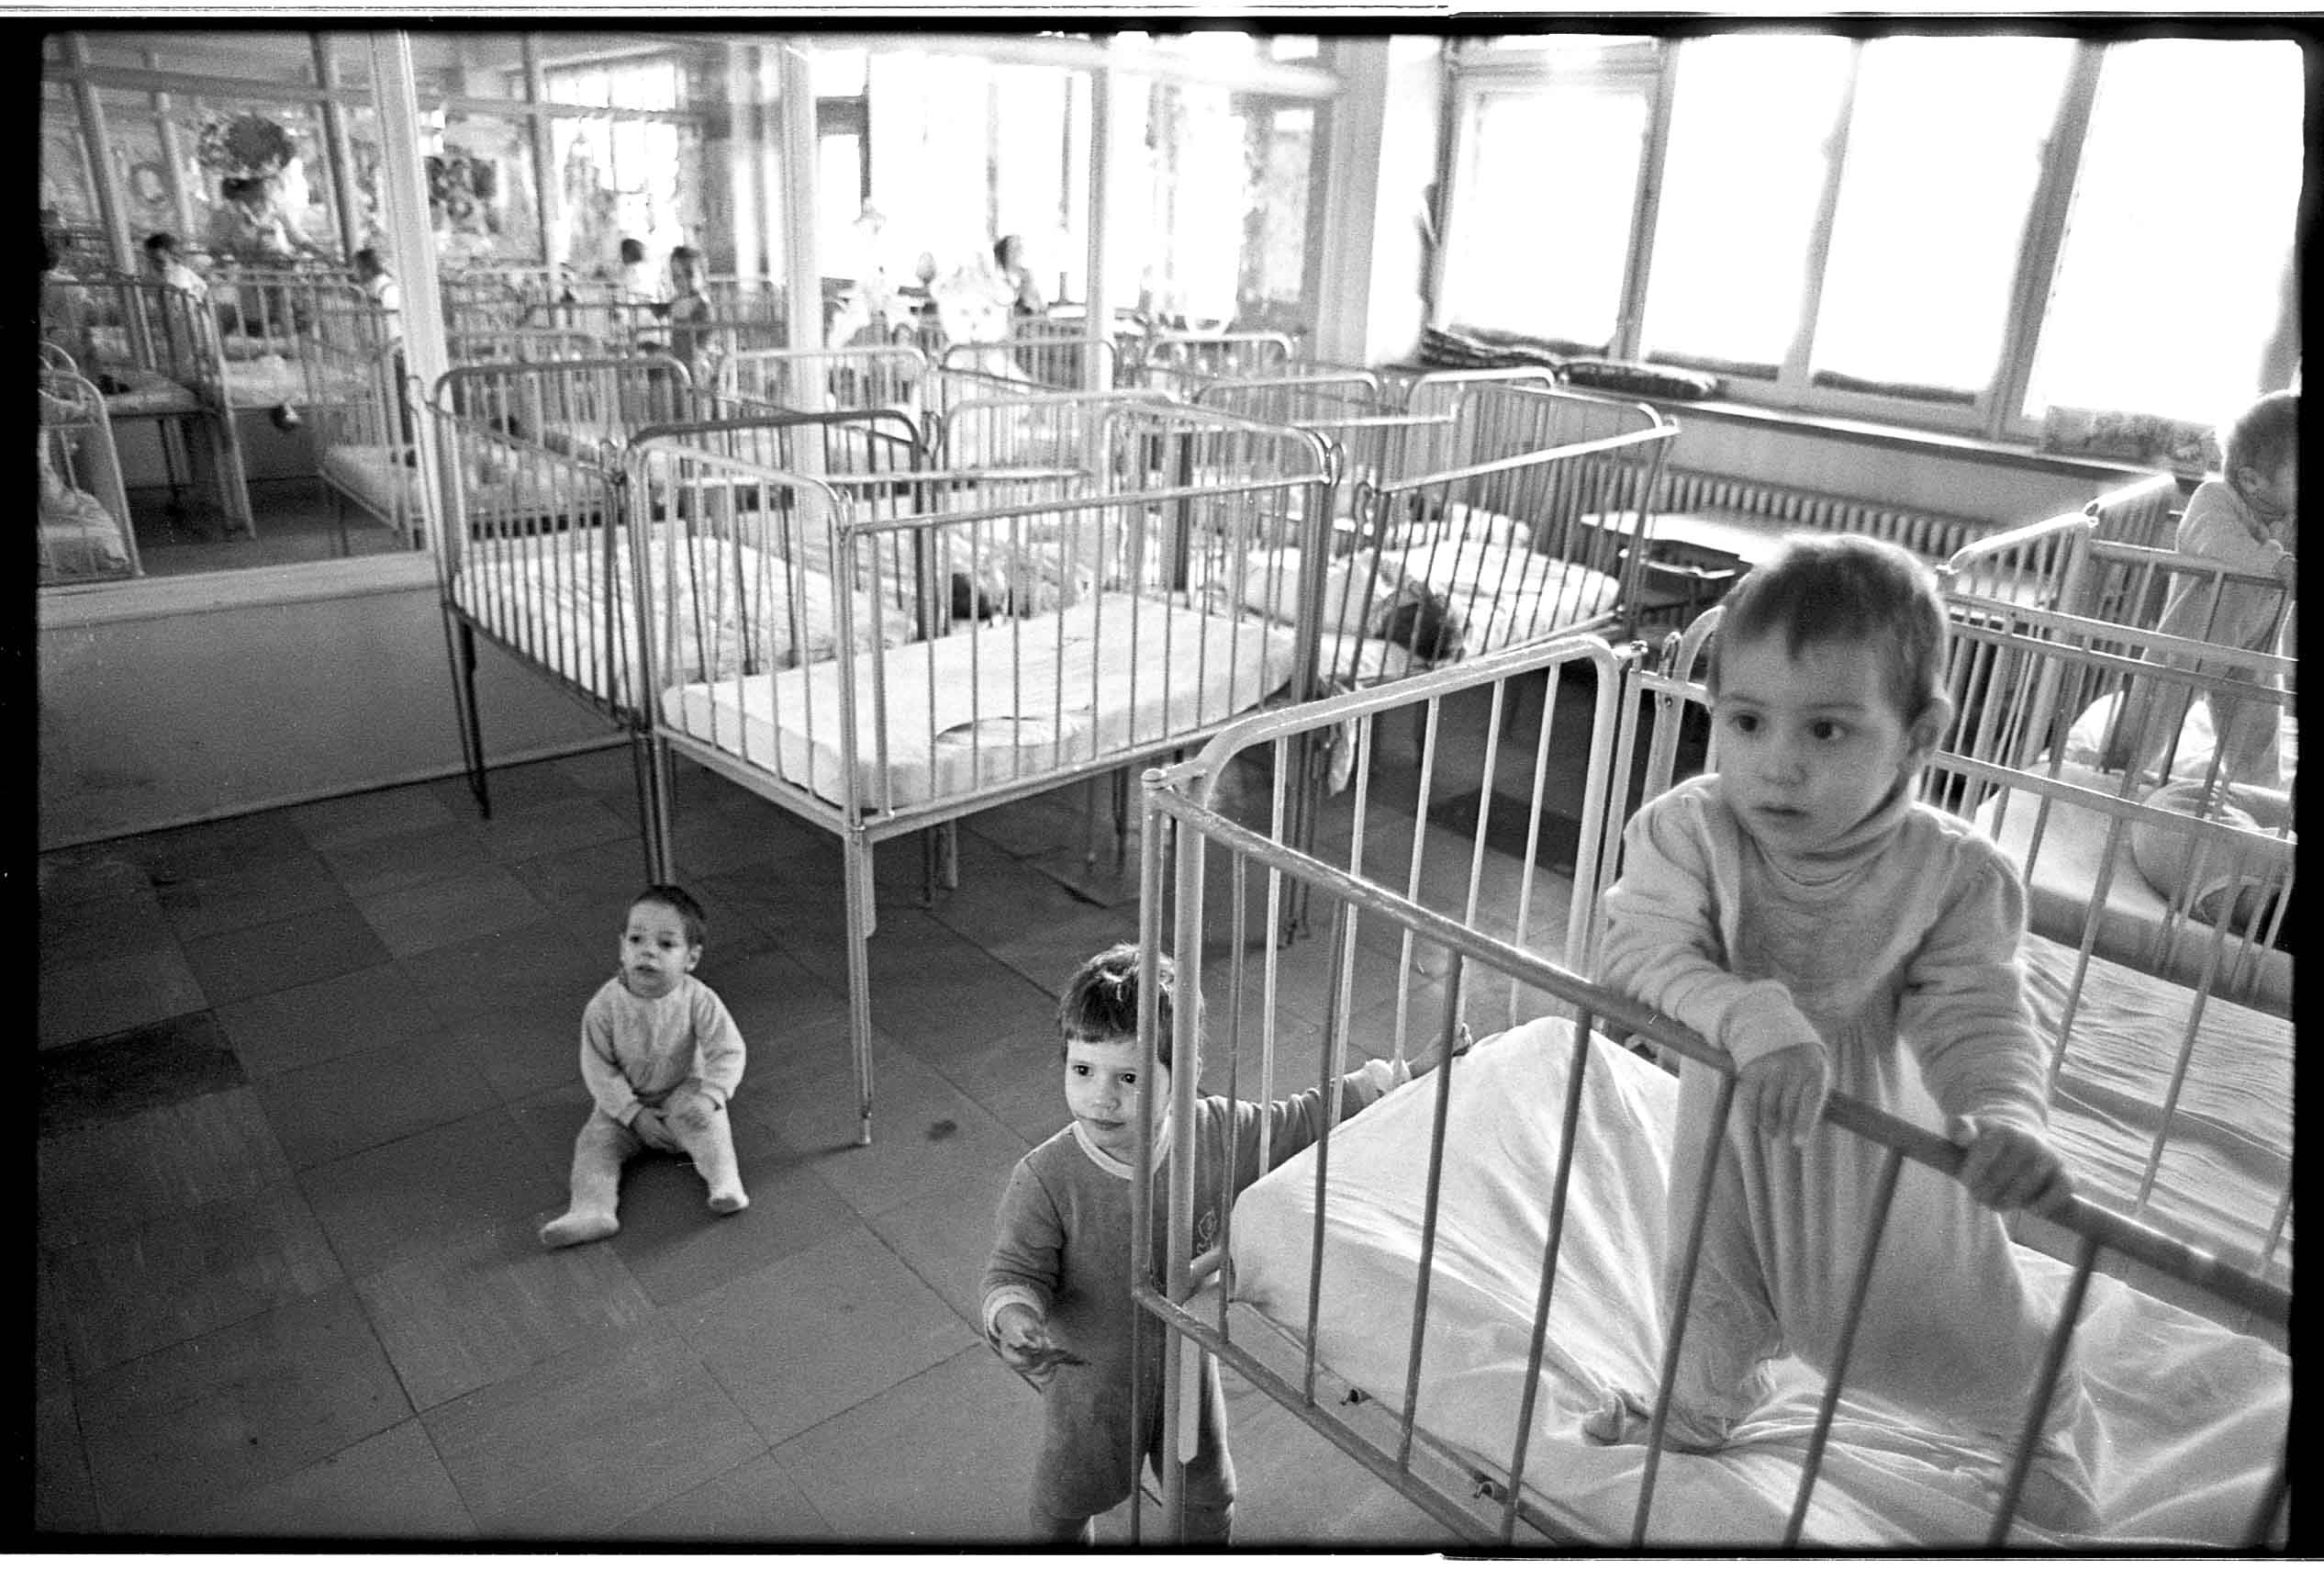 Caption: Orphans in Romania., Credit: Mike Carroll for Harvard University